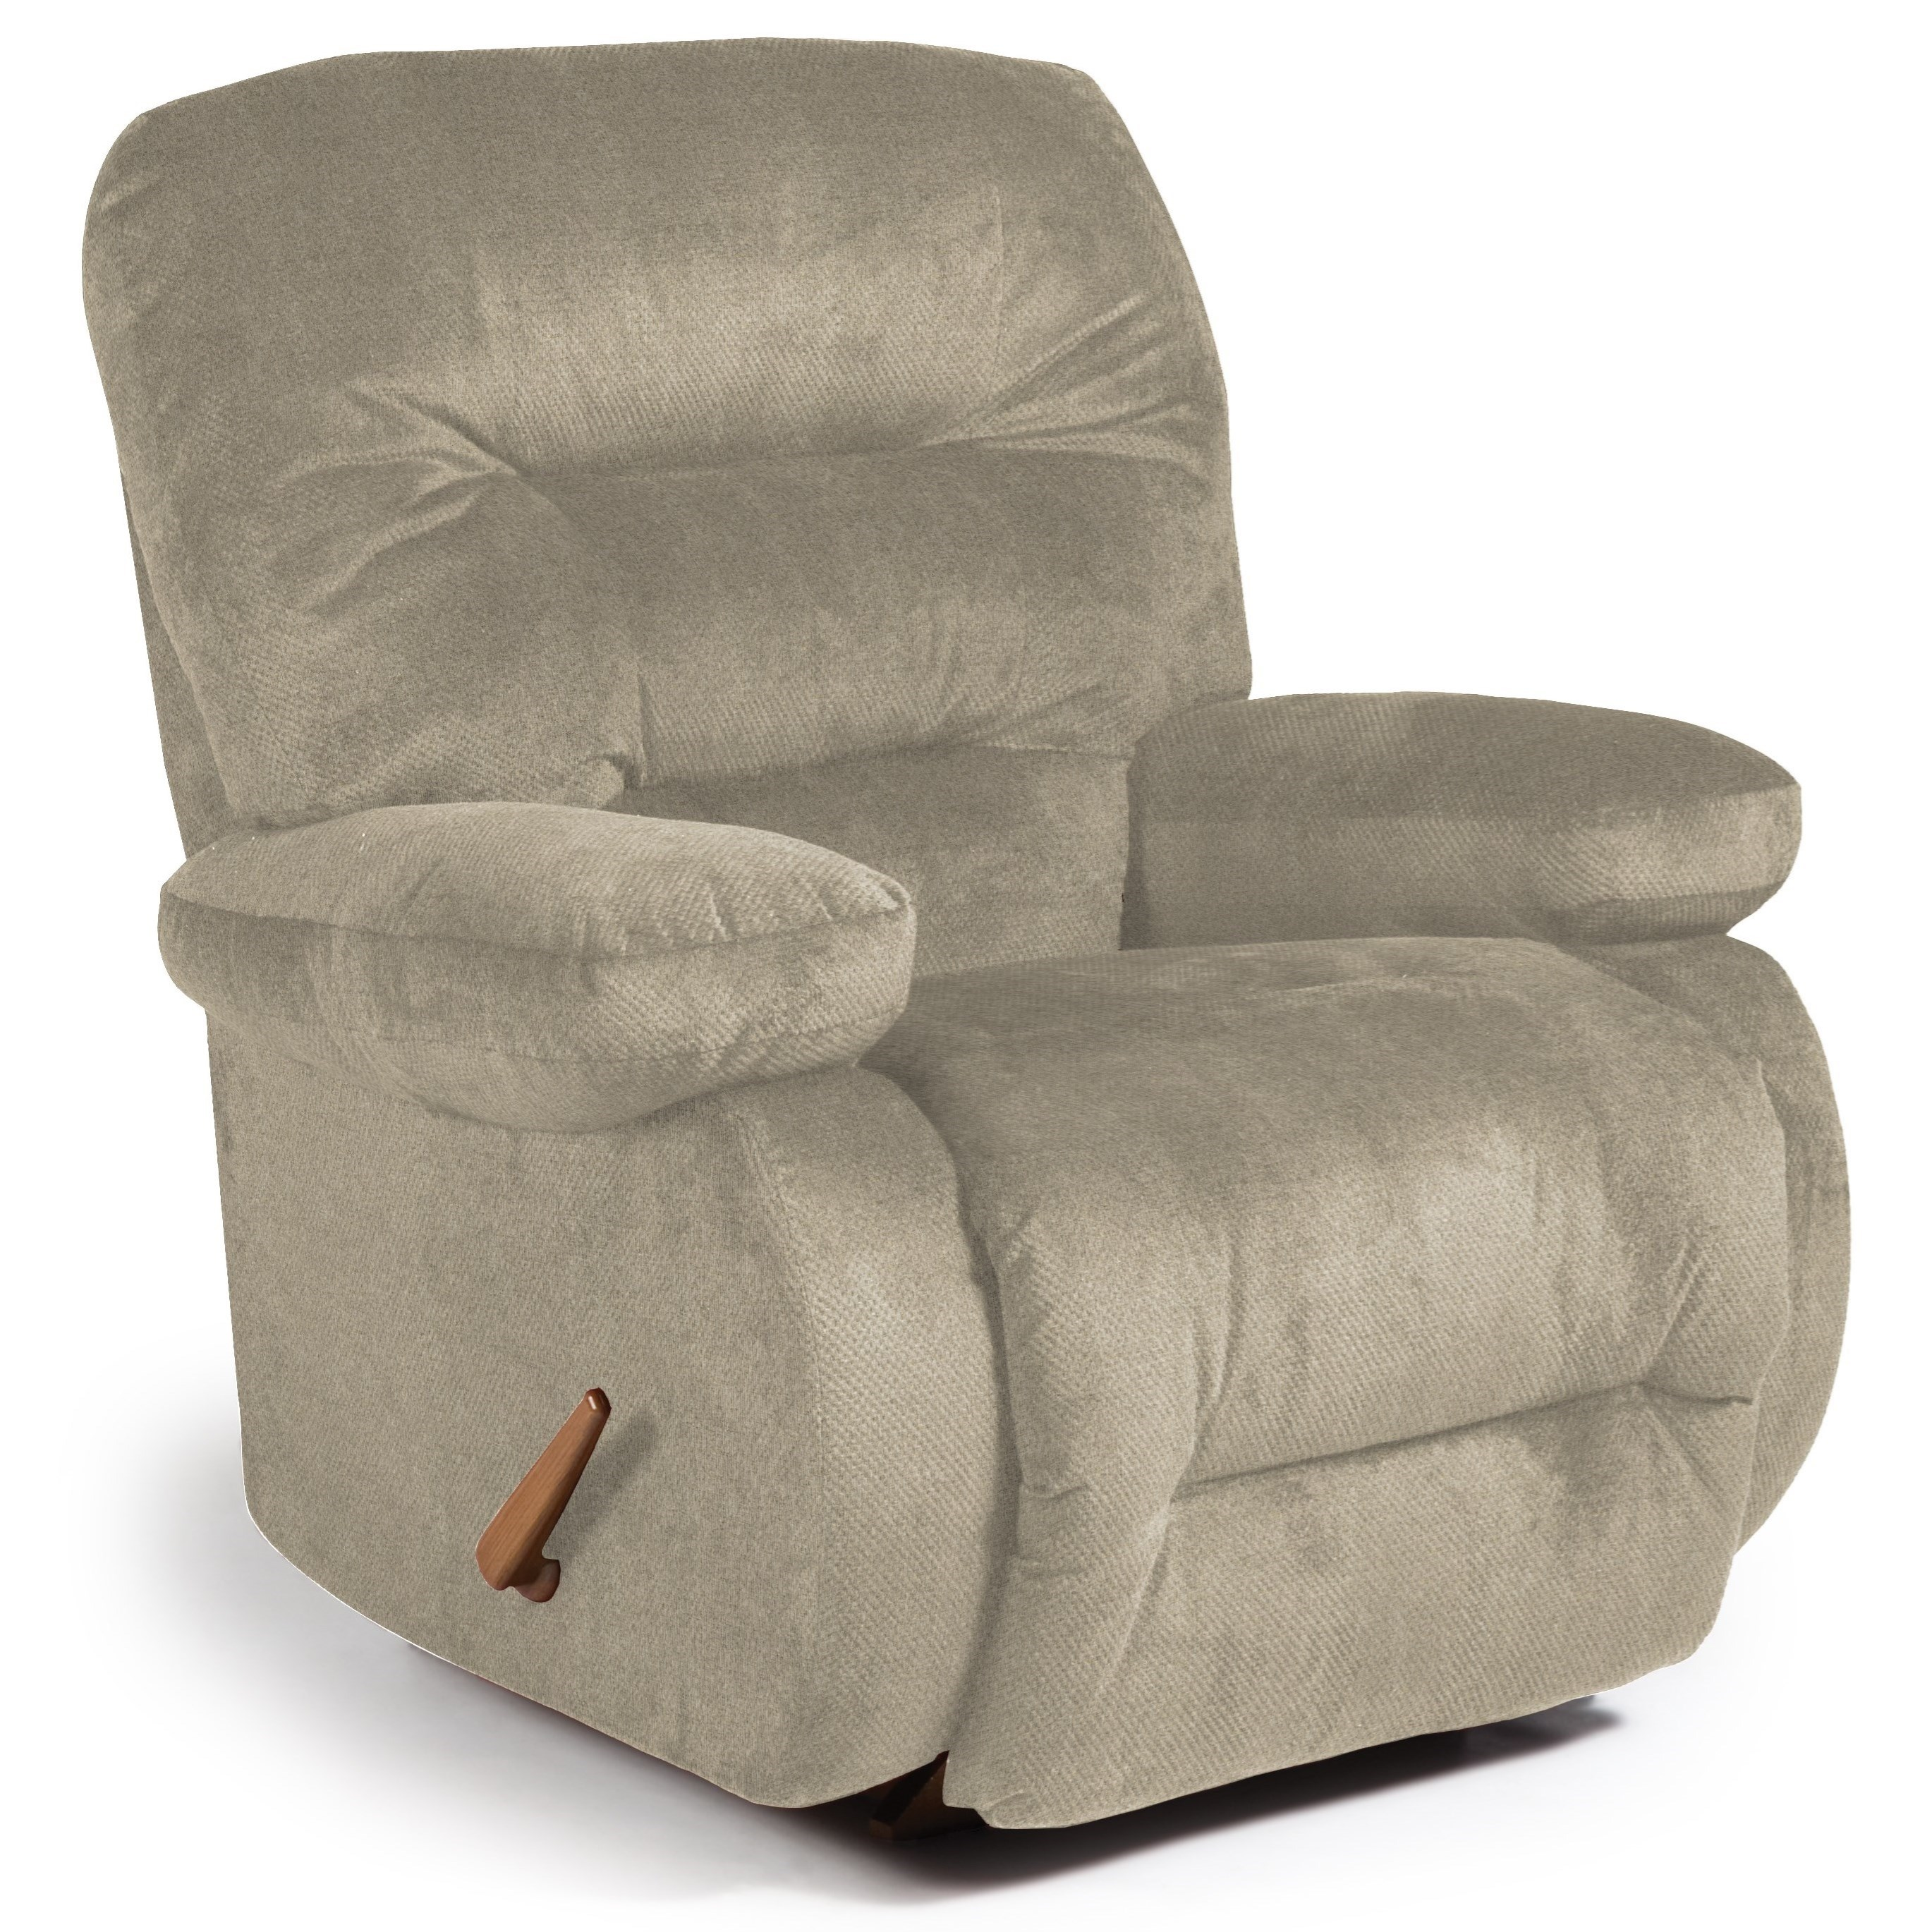 Best Home Furnishings Recliners - Medium Maddox Rocker Recliner - Item Number: -883606086-24693